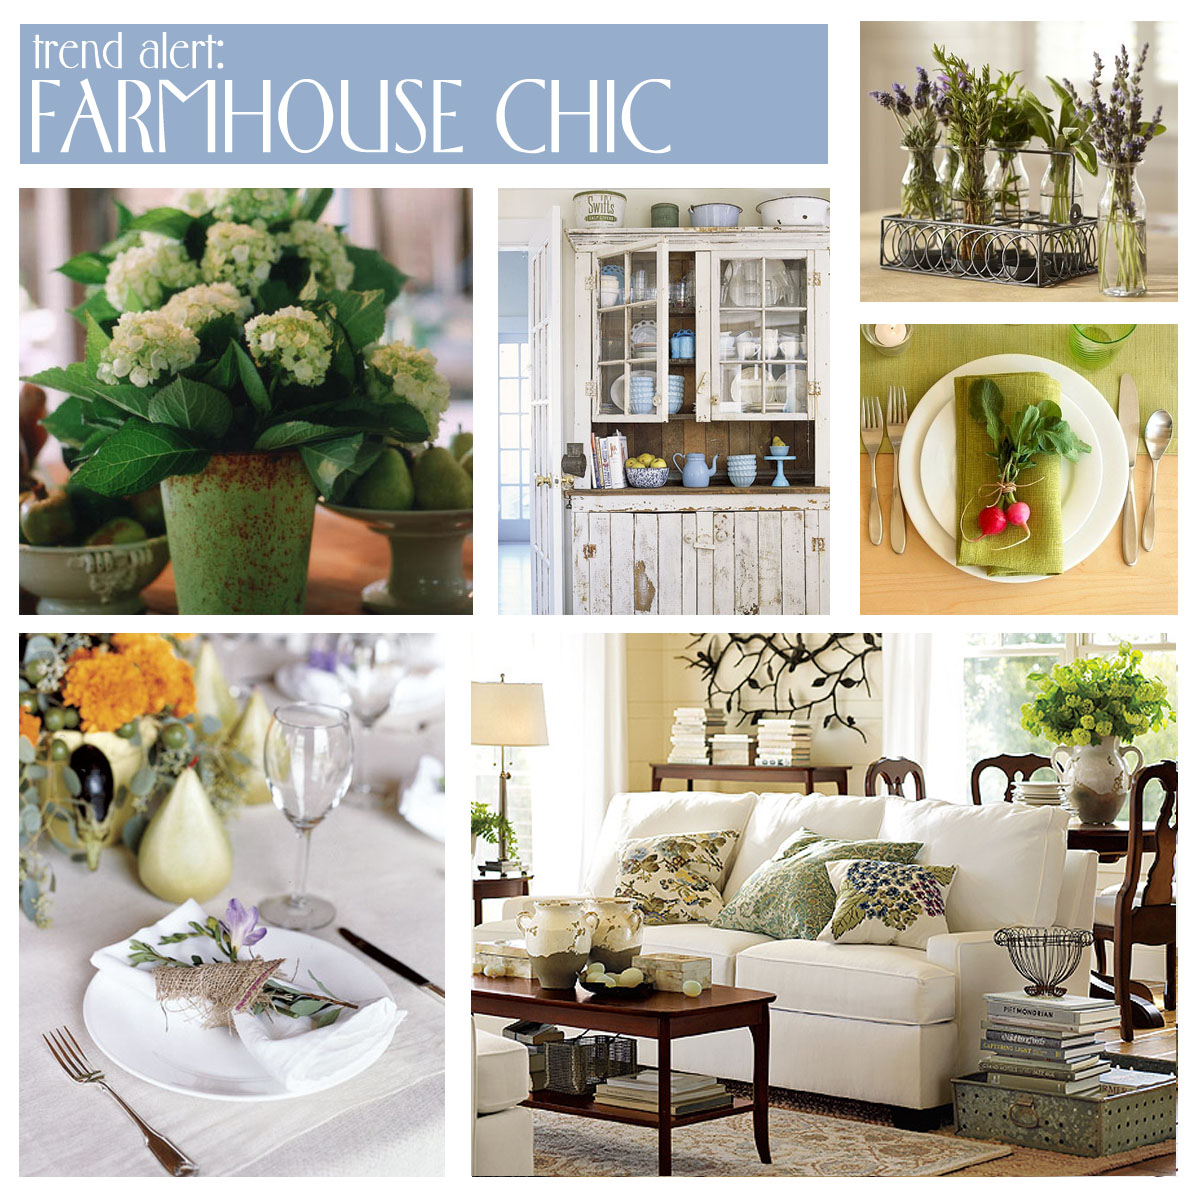 Room for Style: Decorating | Farmhouse Chic